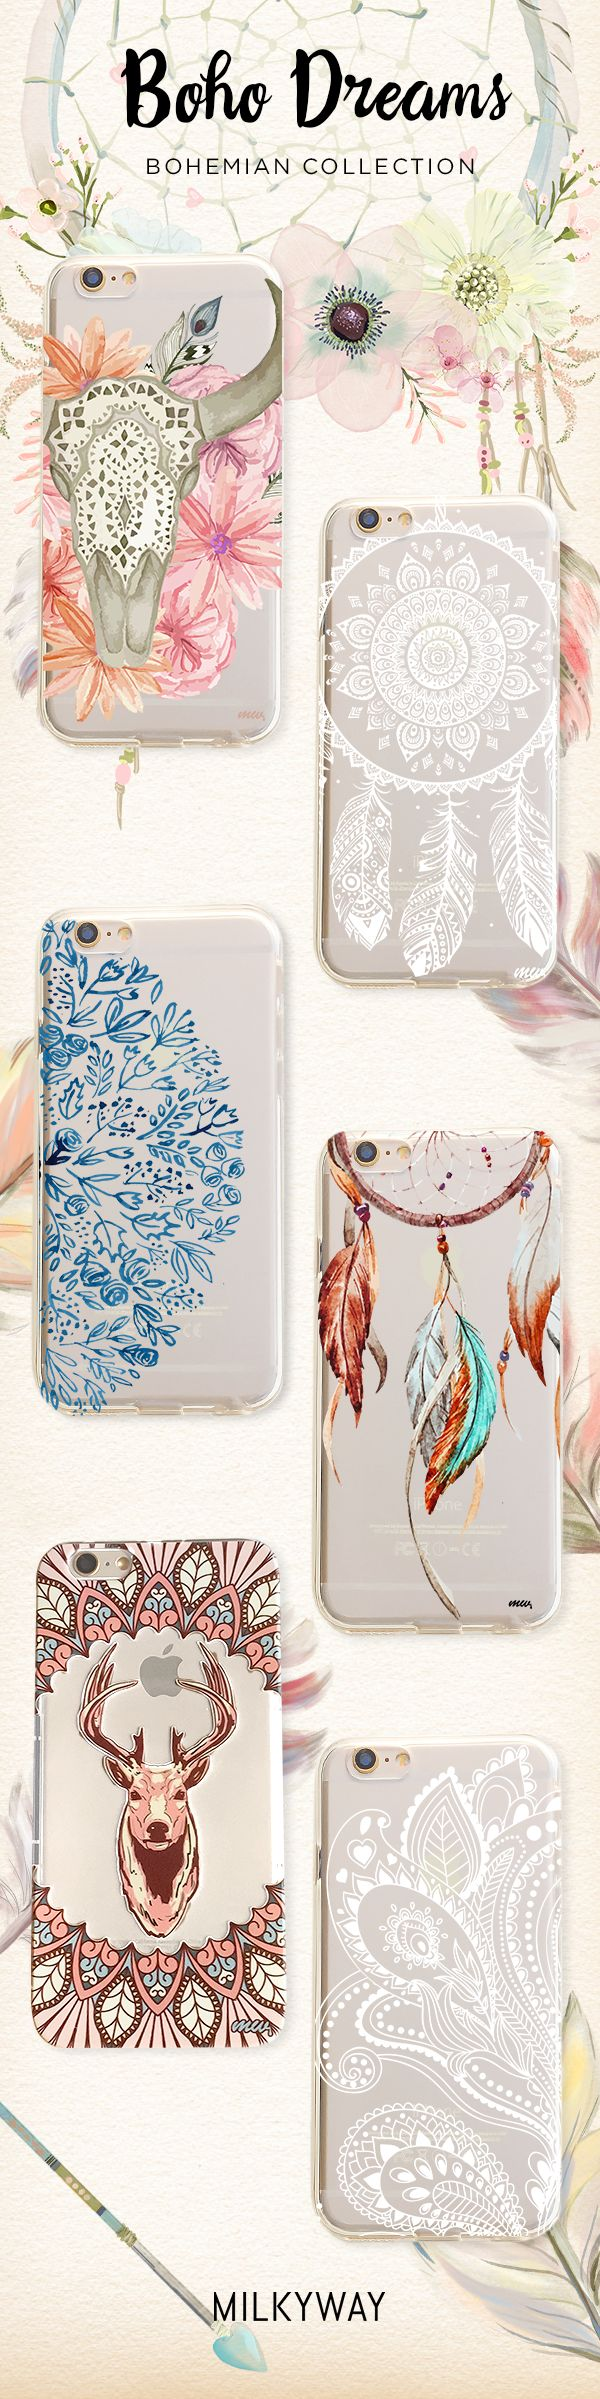 Bohemian Dreams Collection of Phone Cases for iPhone & Samsung. Shop Now at Milkyway Cases